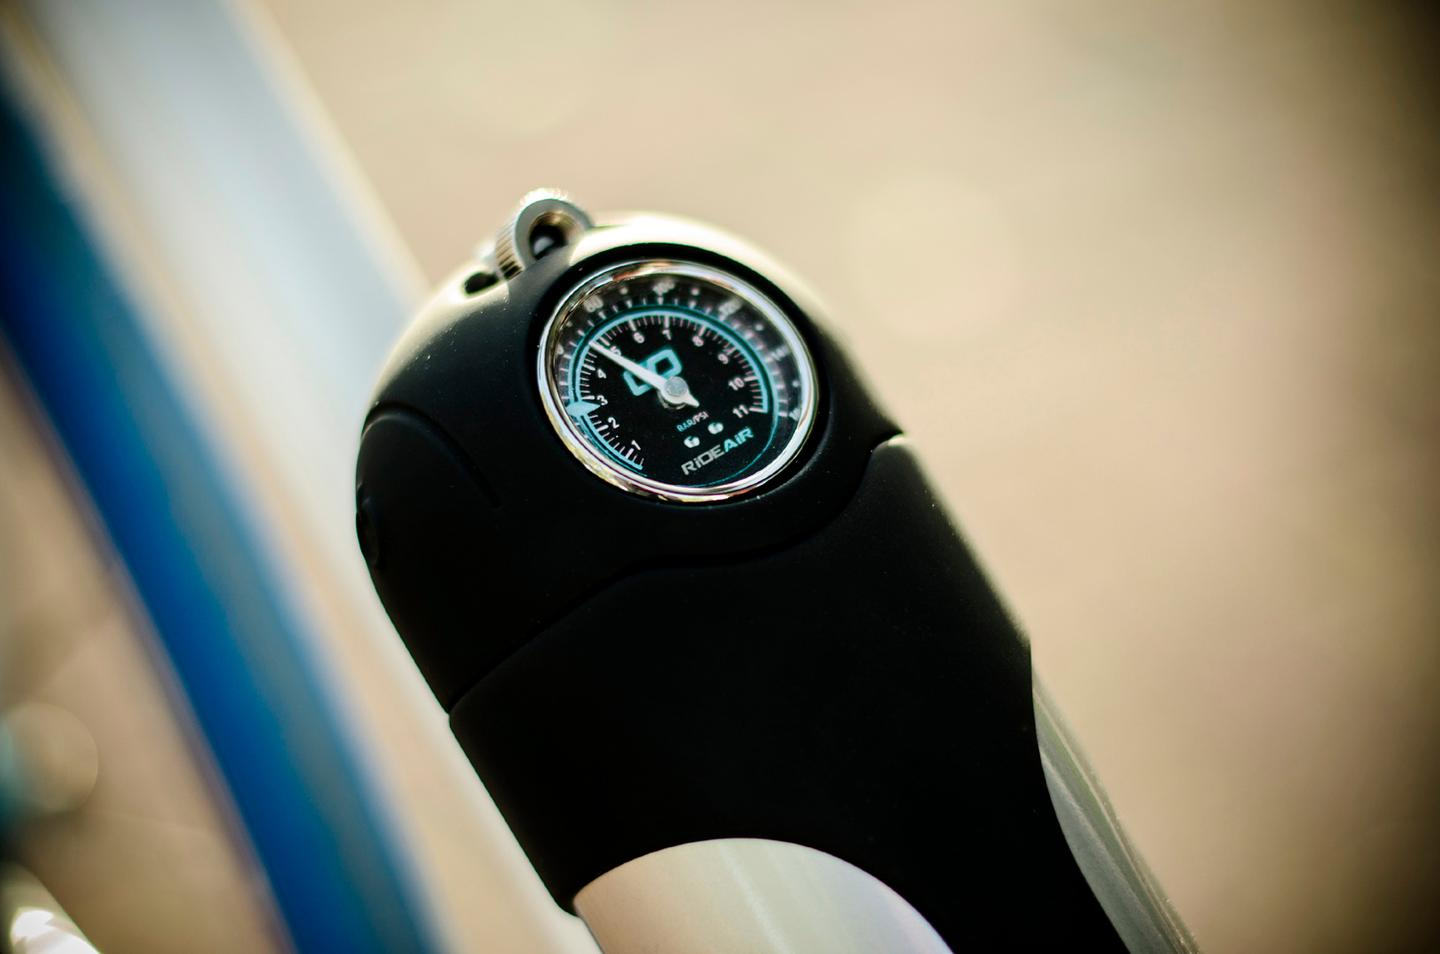 RideAir features a dial gauge that shows how much air is left inside it (Photo: DesignAir Innovations)